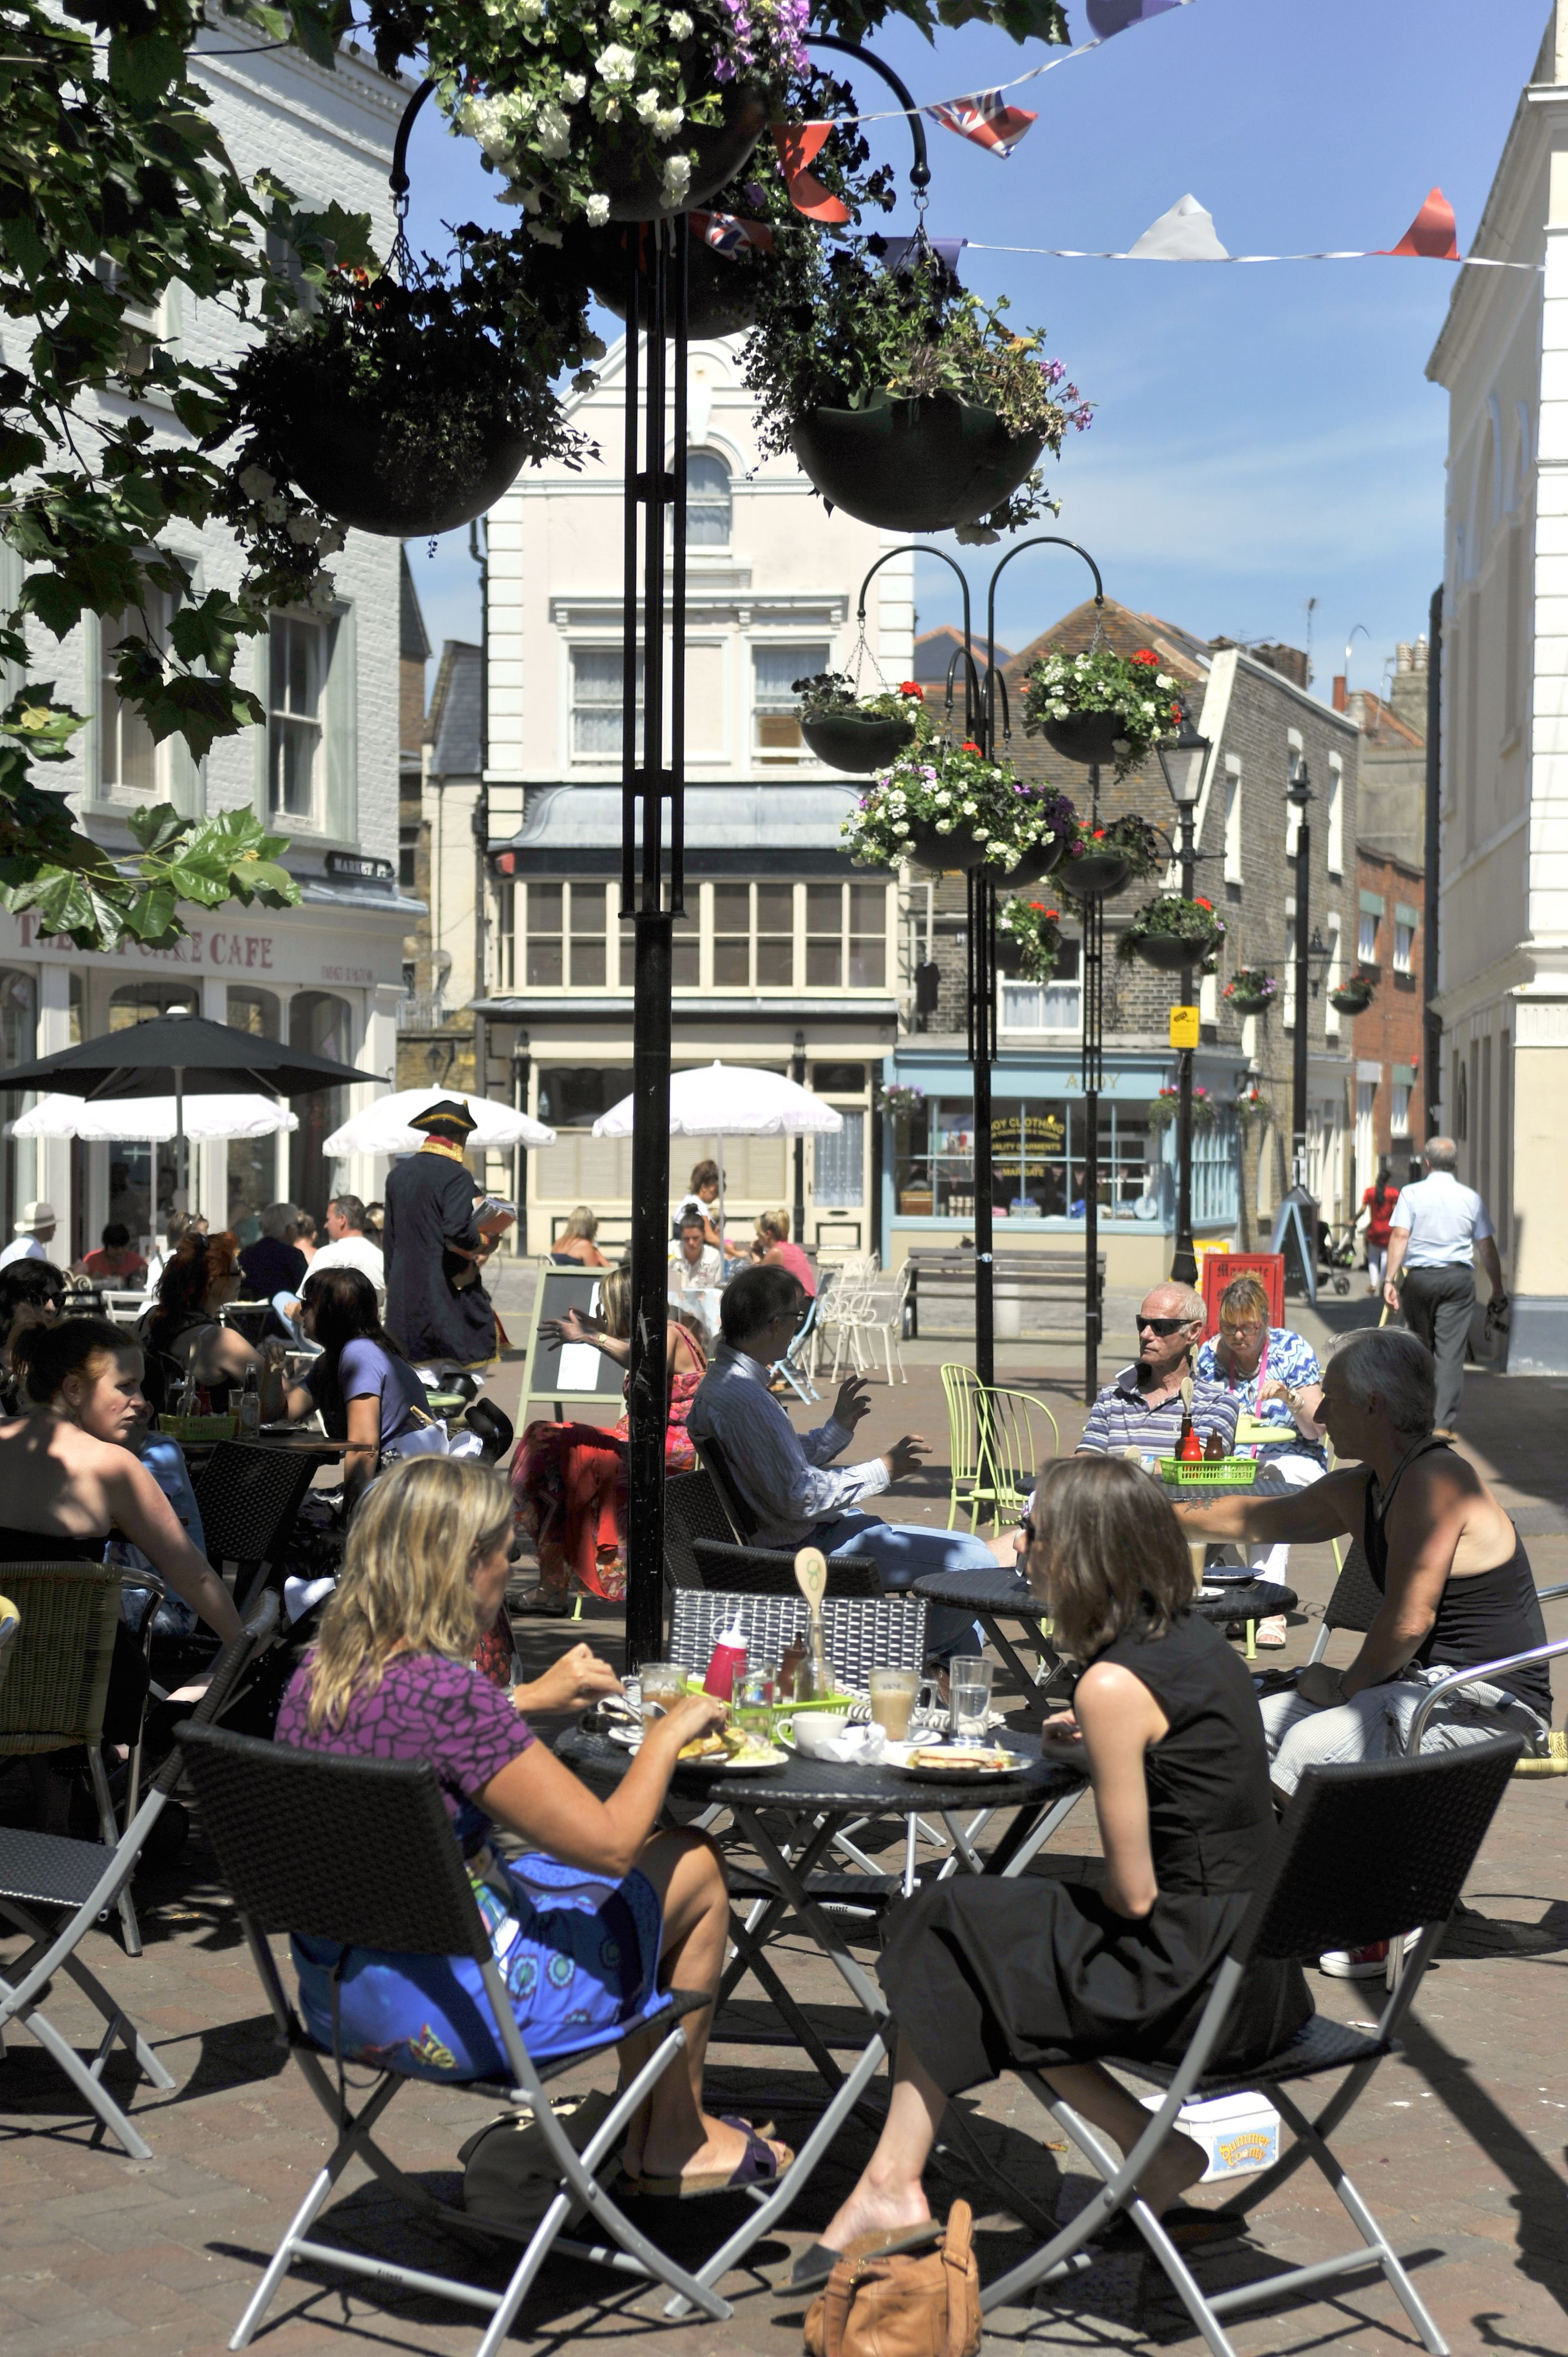 margate old town is now known for its mix of cafes bars craft